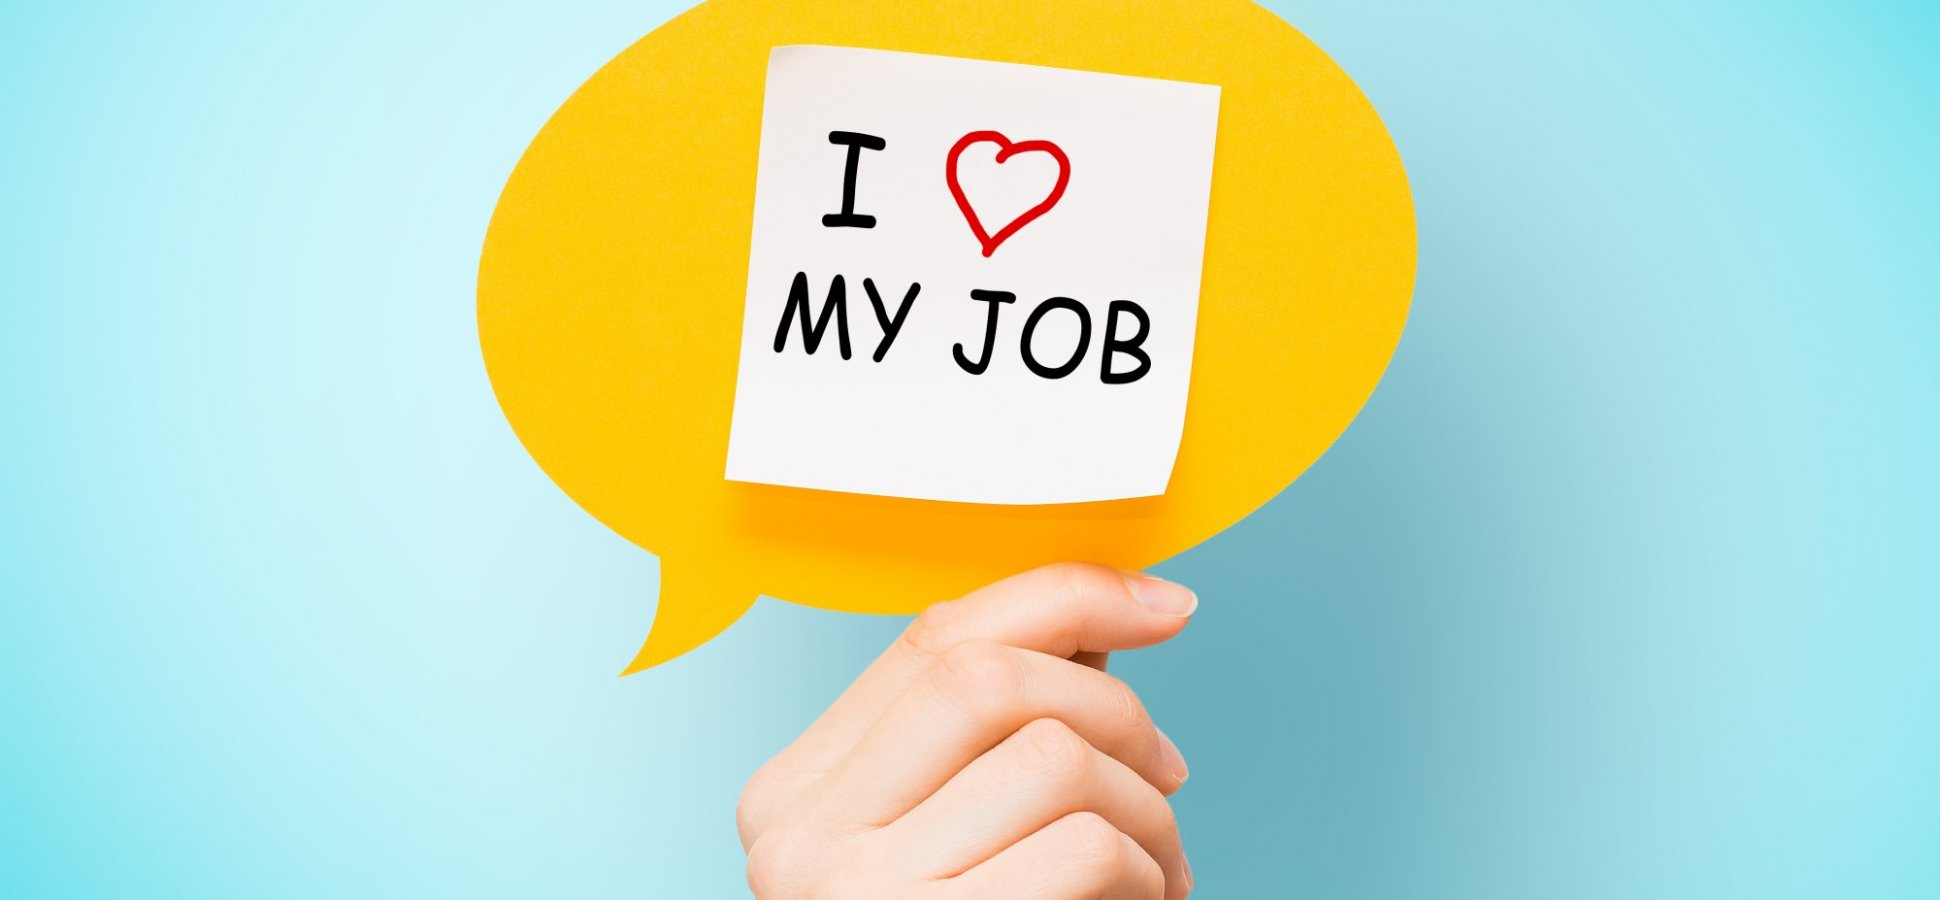 How to Find a Job You Love: The 3 Most Powerful Things You Can Do